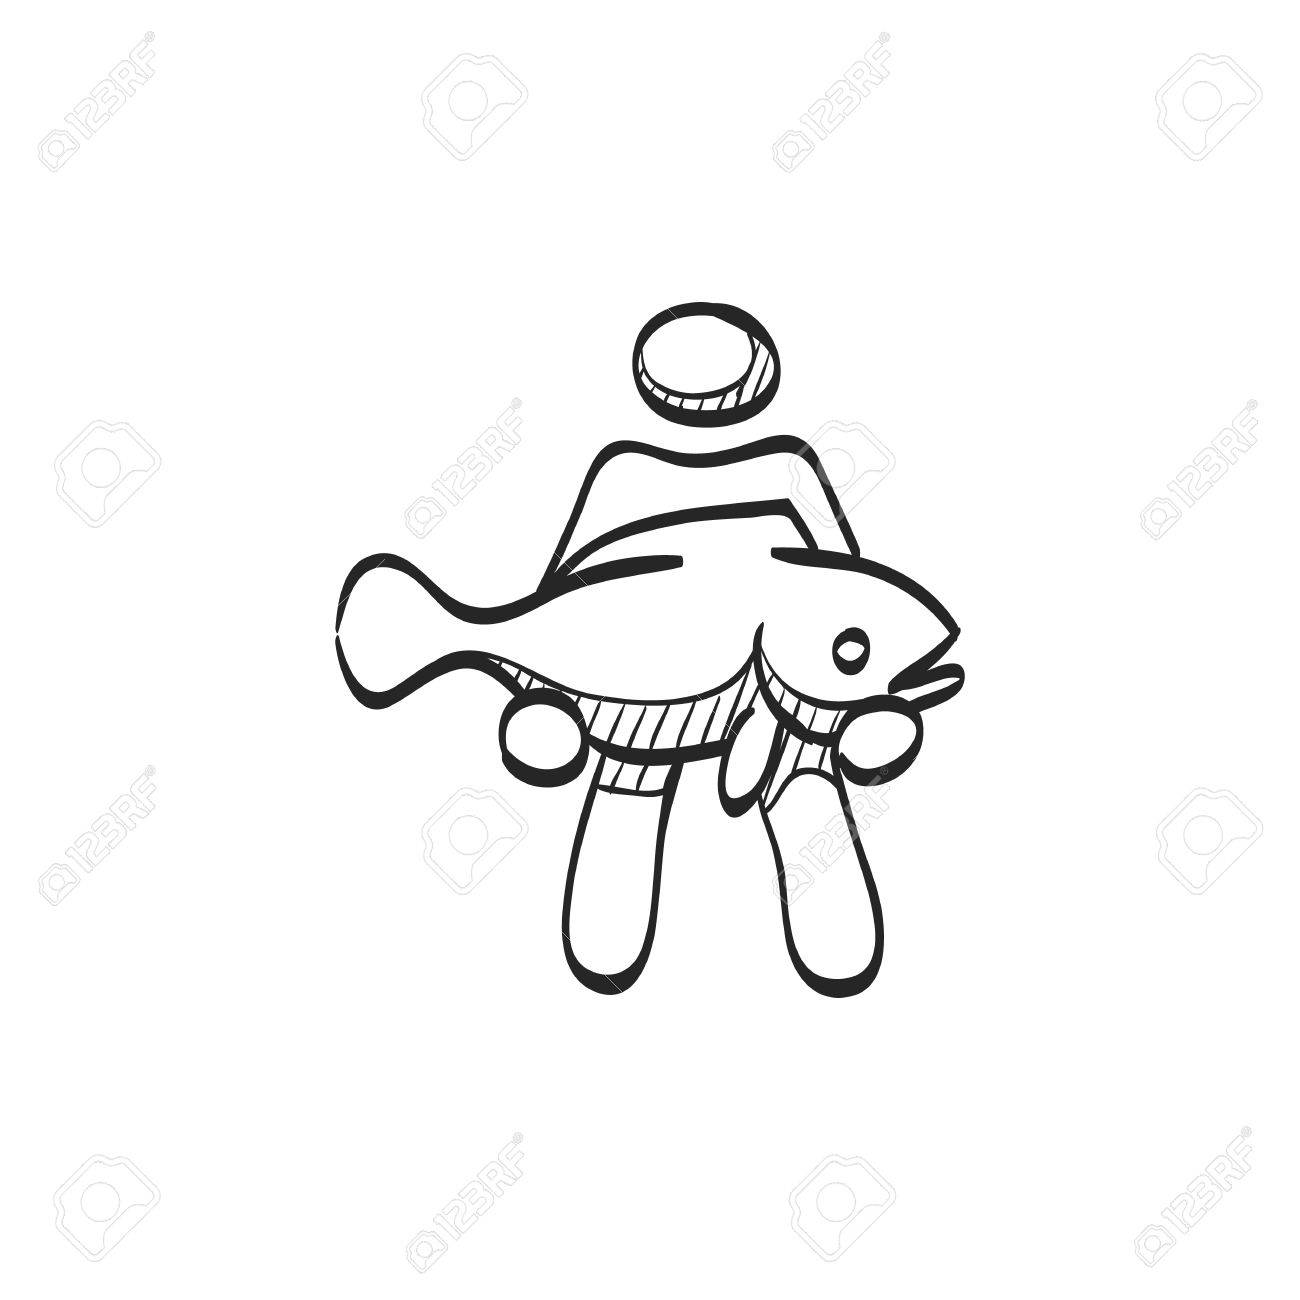 1300x1300 Man Holding Fish Icon In Doodle Sketch Lines. Fishing Fisherman